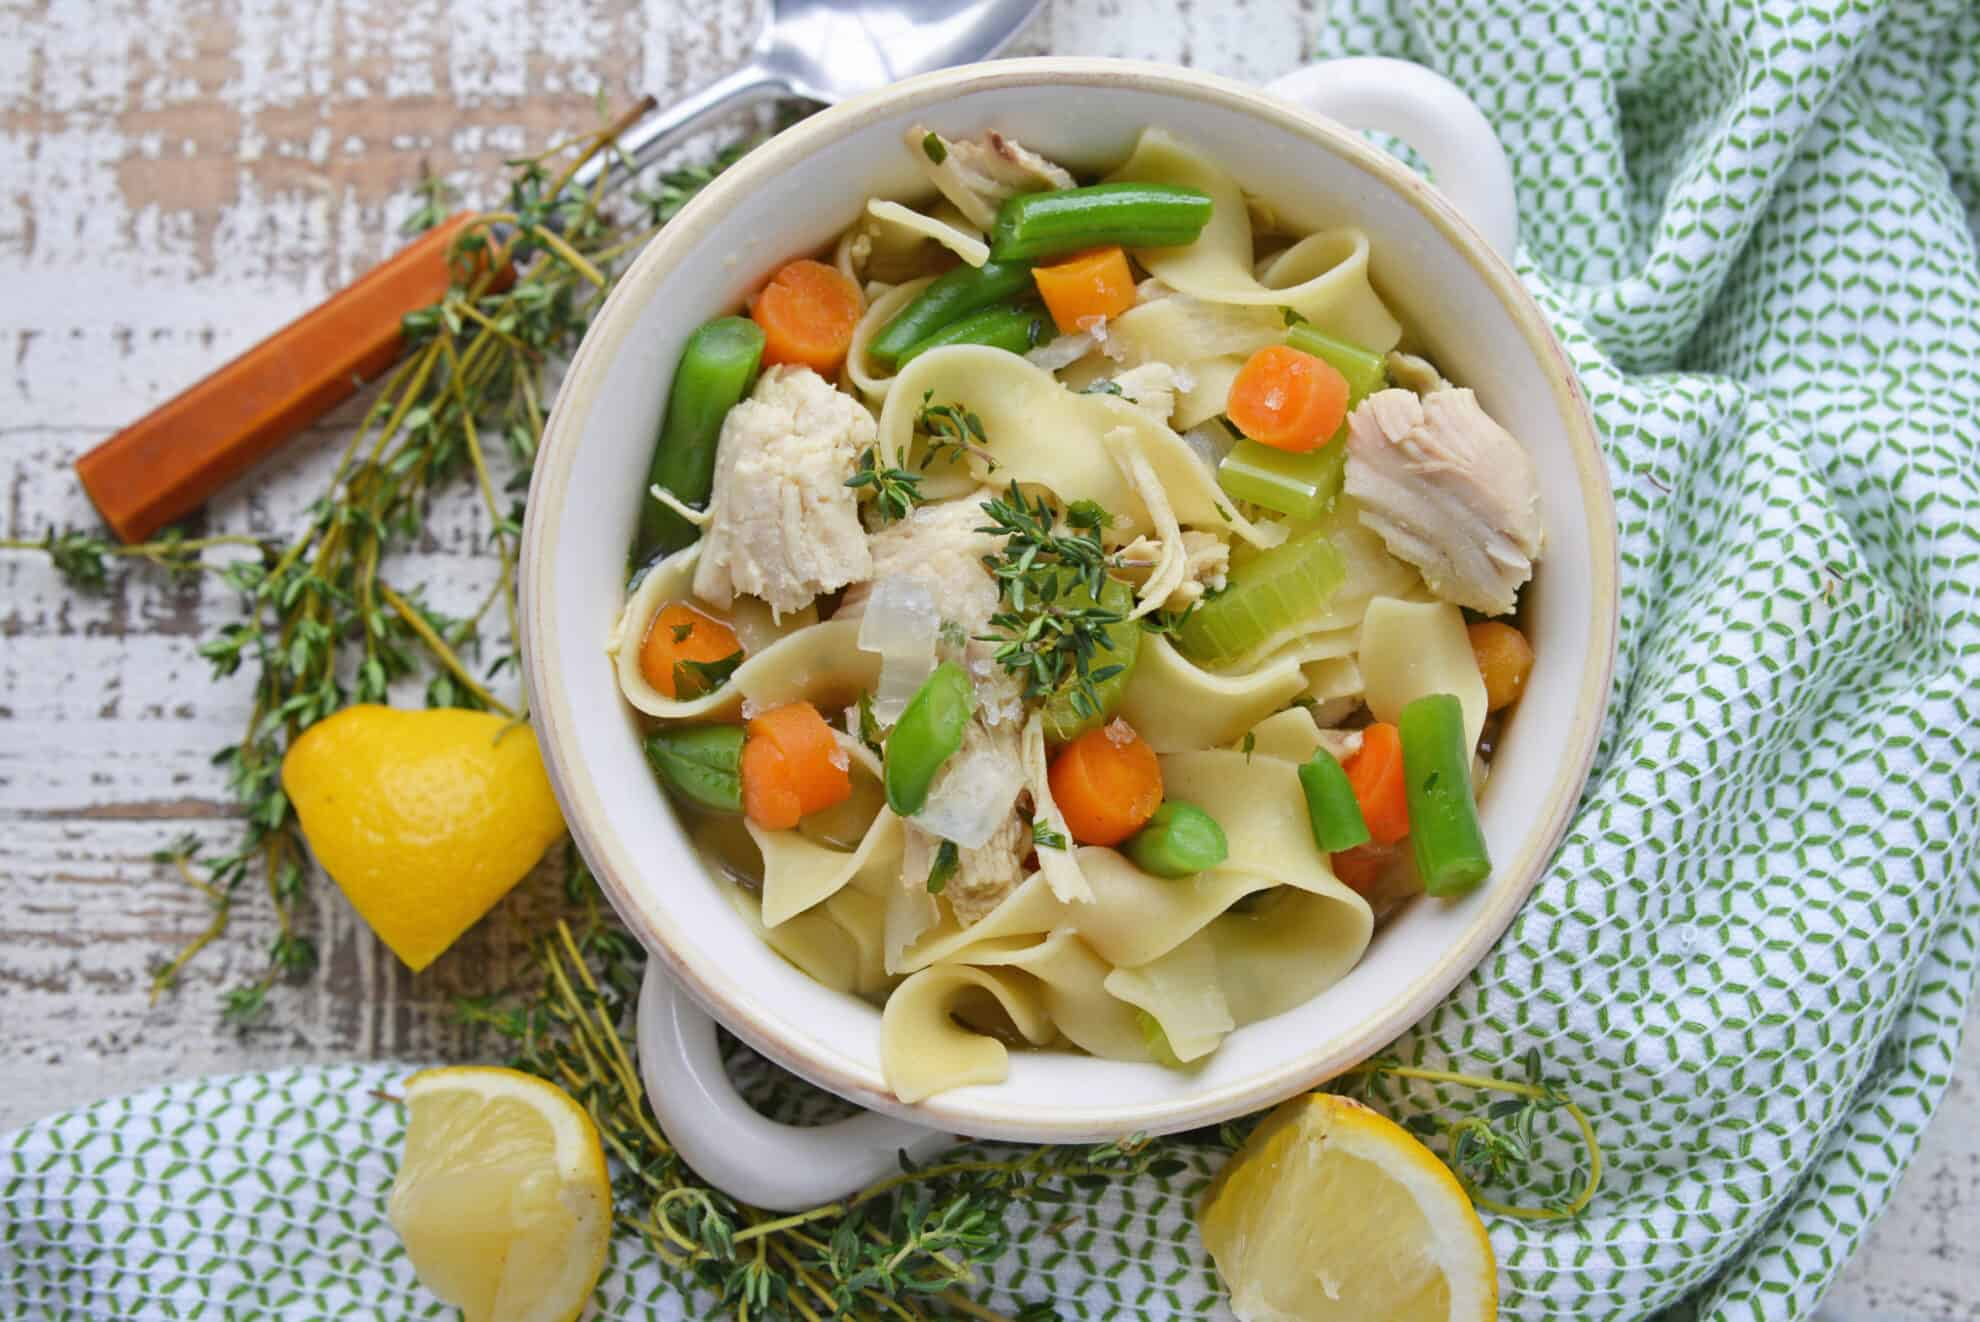 Chicken noodle soup in a white serving bowl